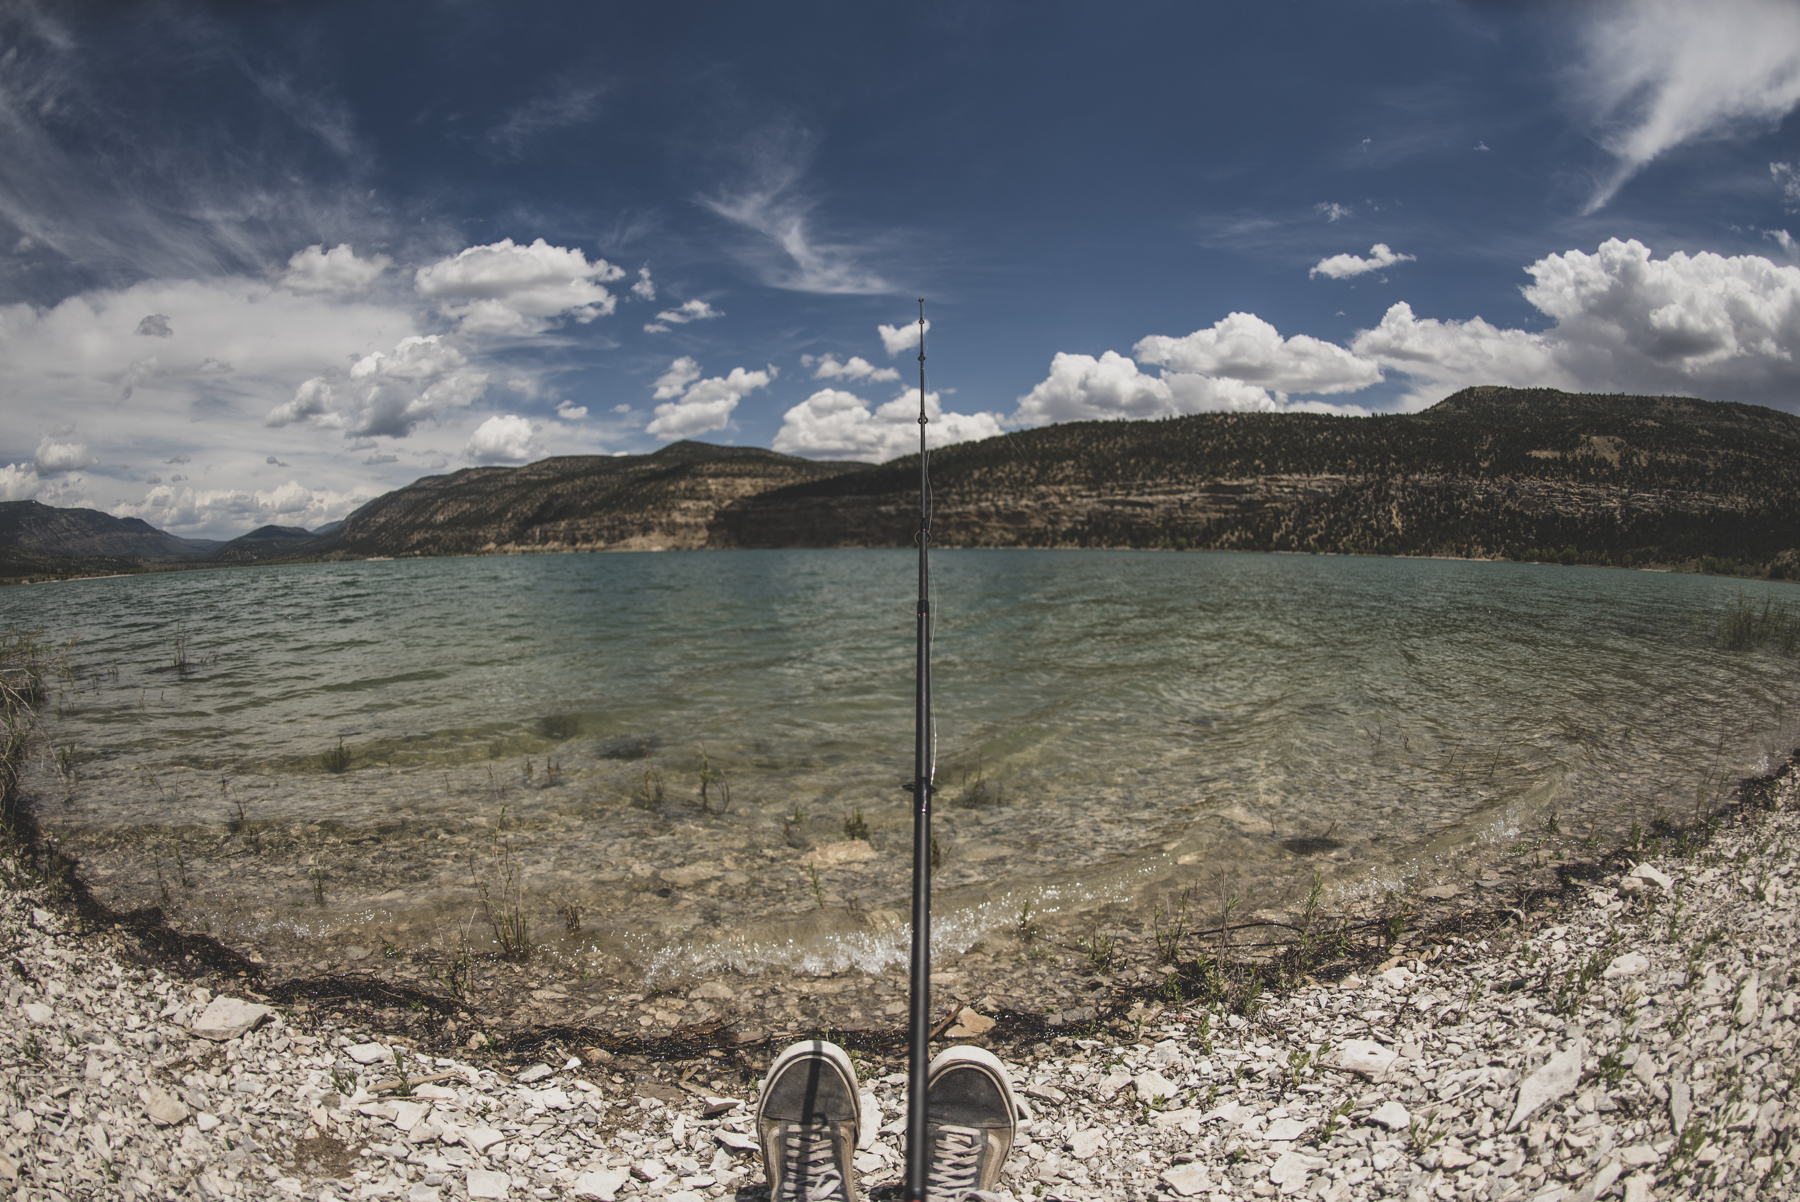 Fishing on the shore of Joes Valley